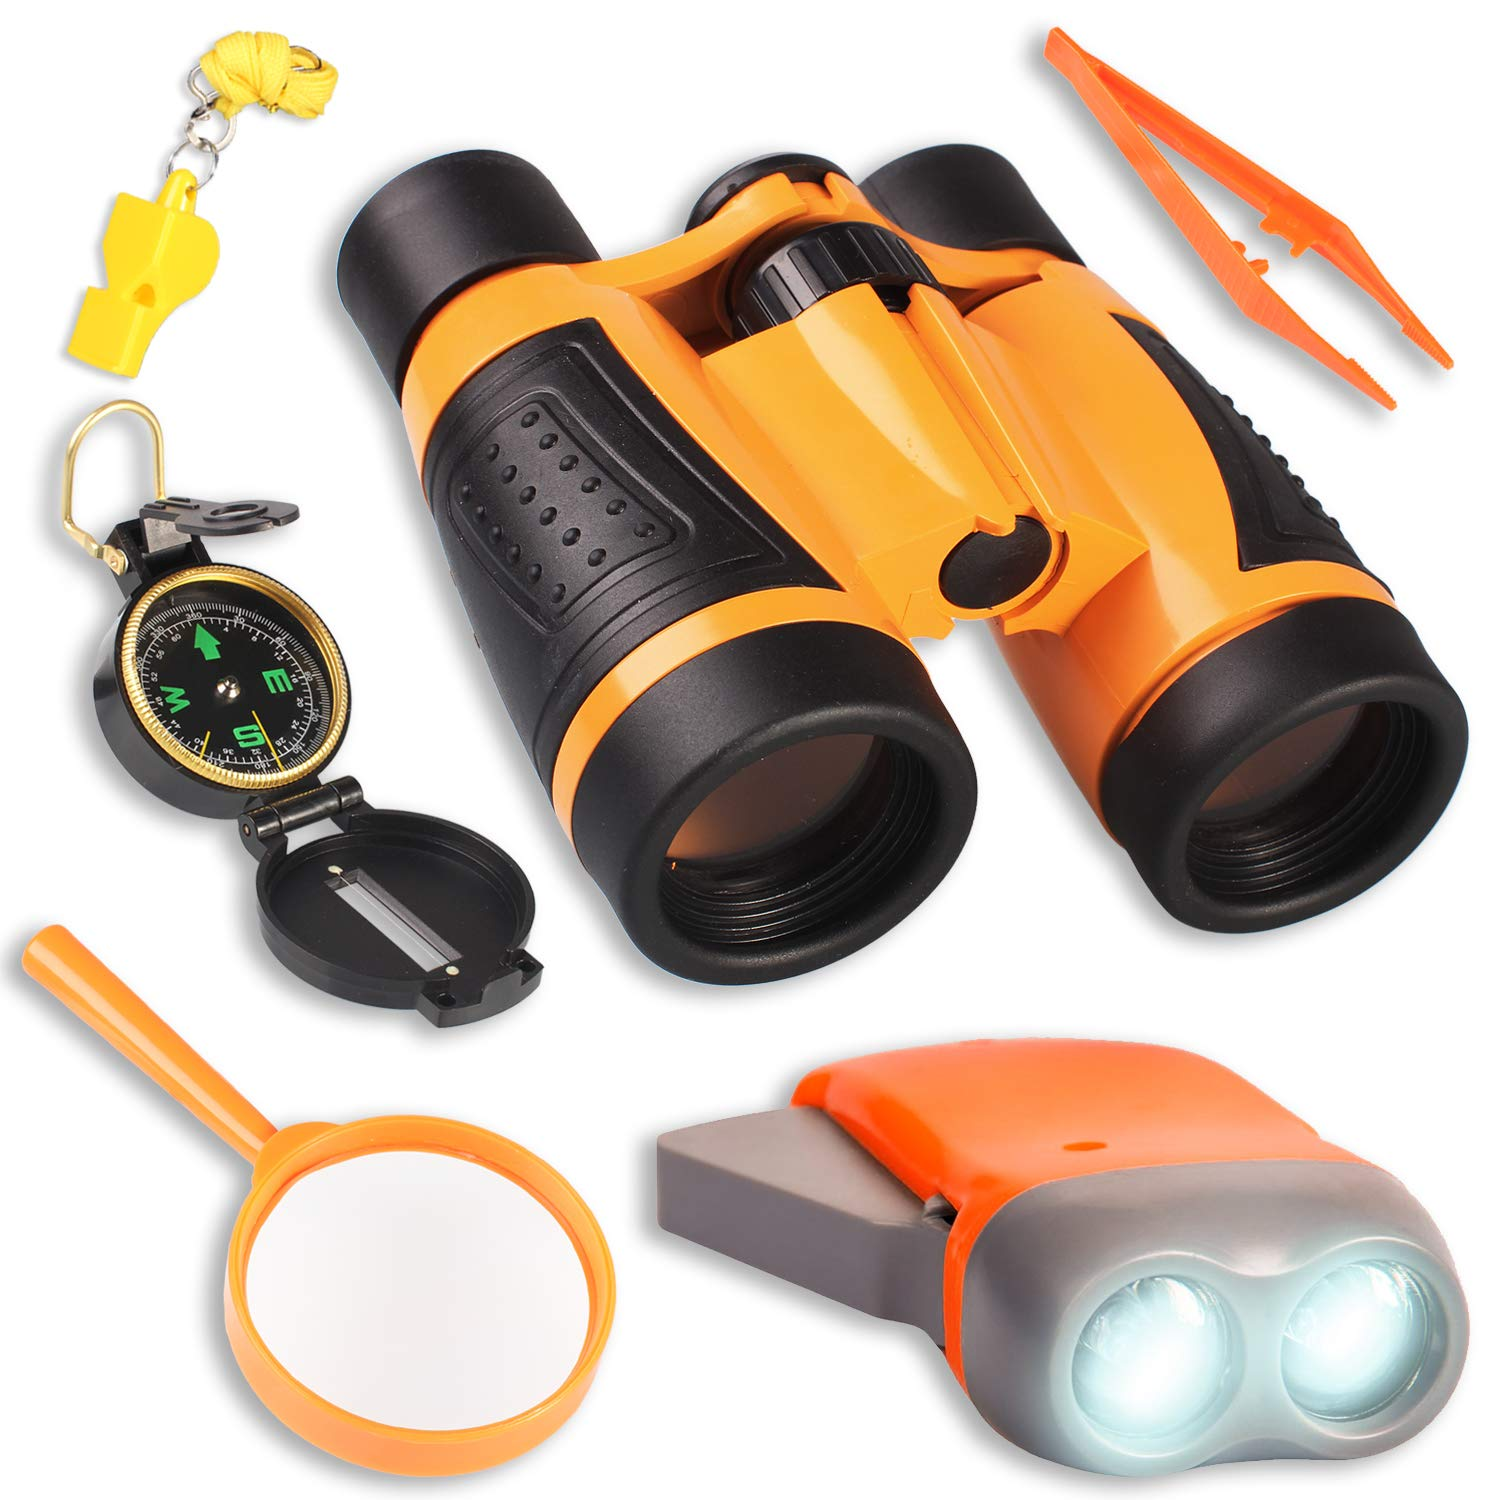 Outdoor Exploration Set, Perfect Gift for Kids.